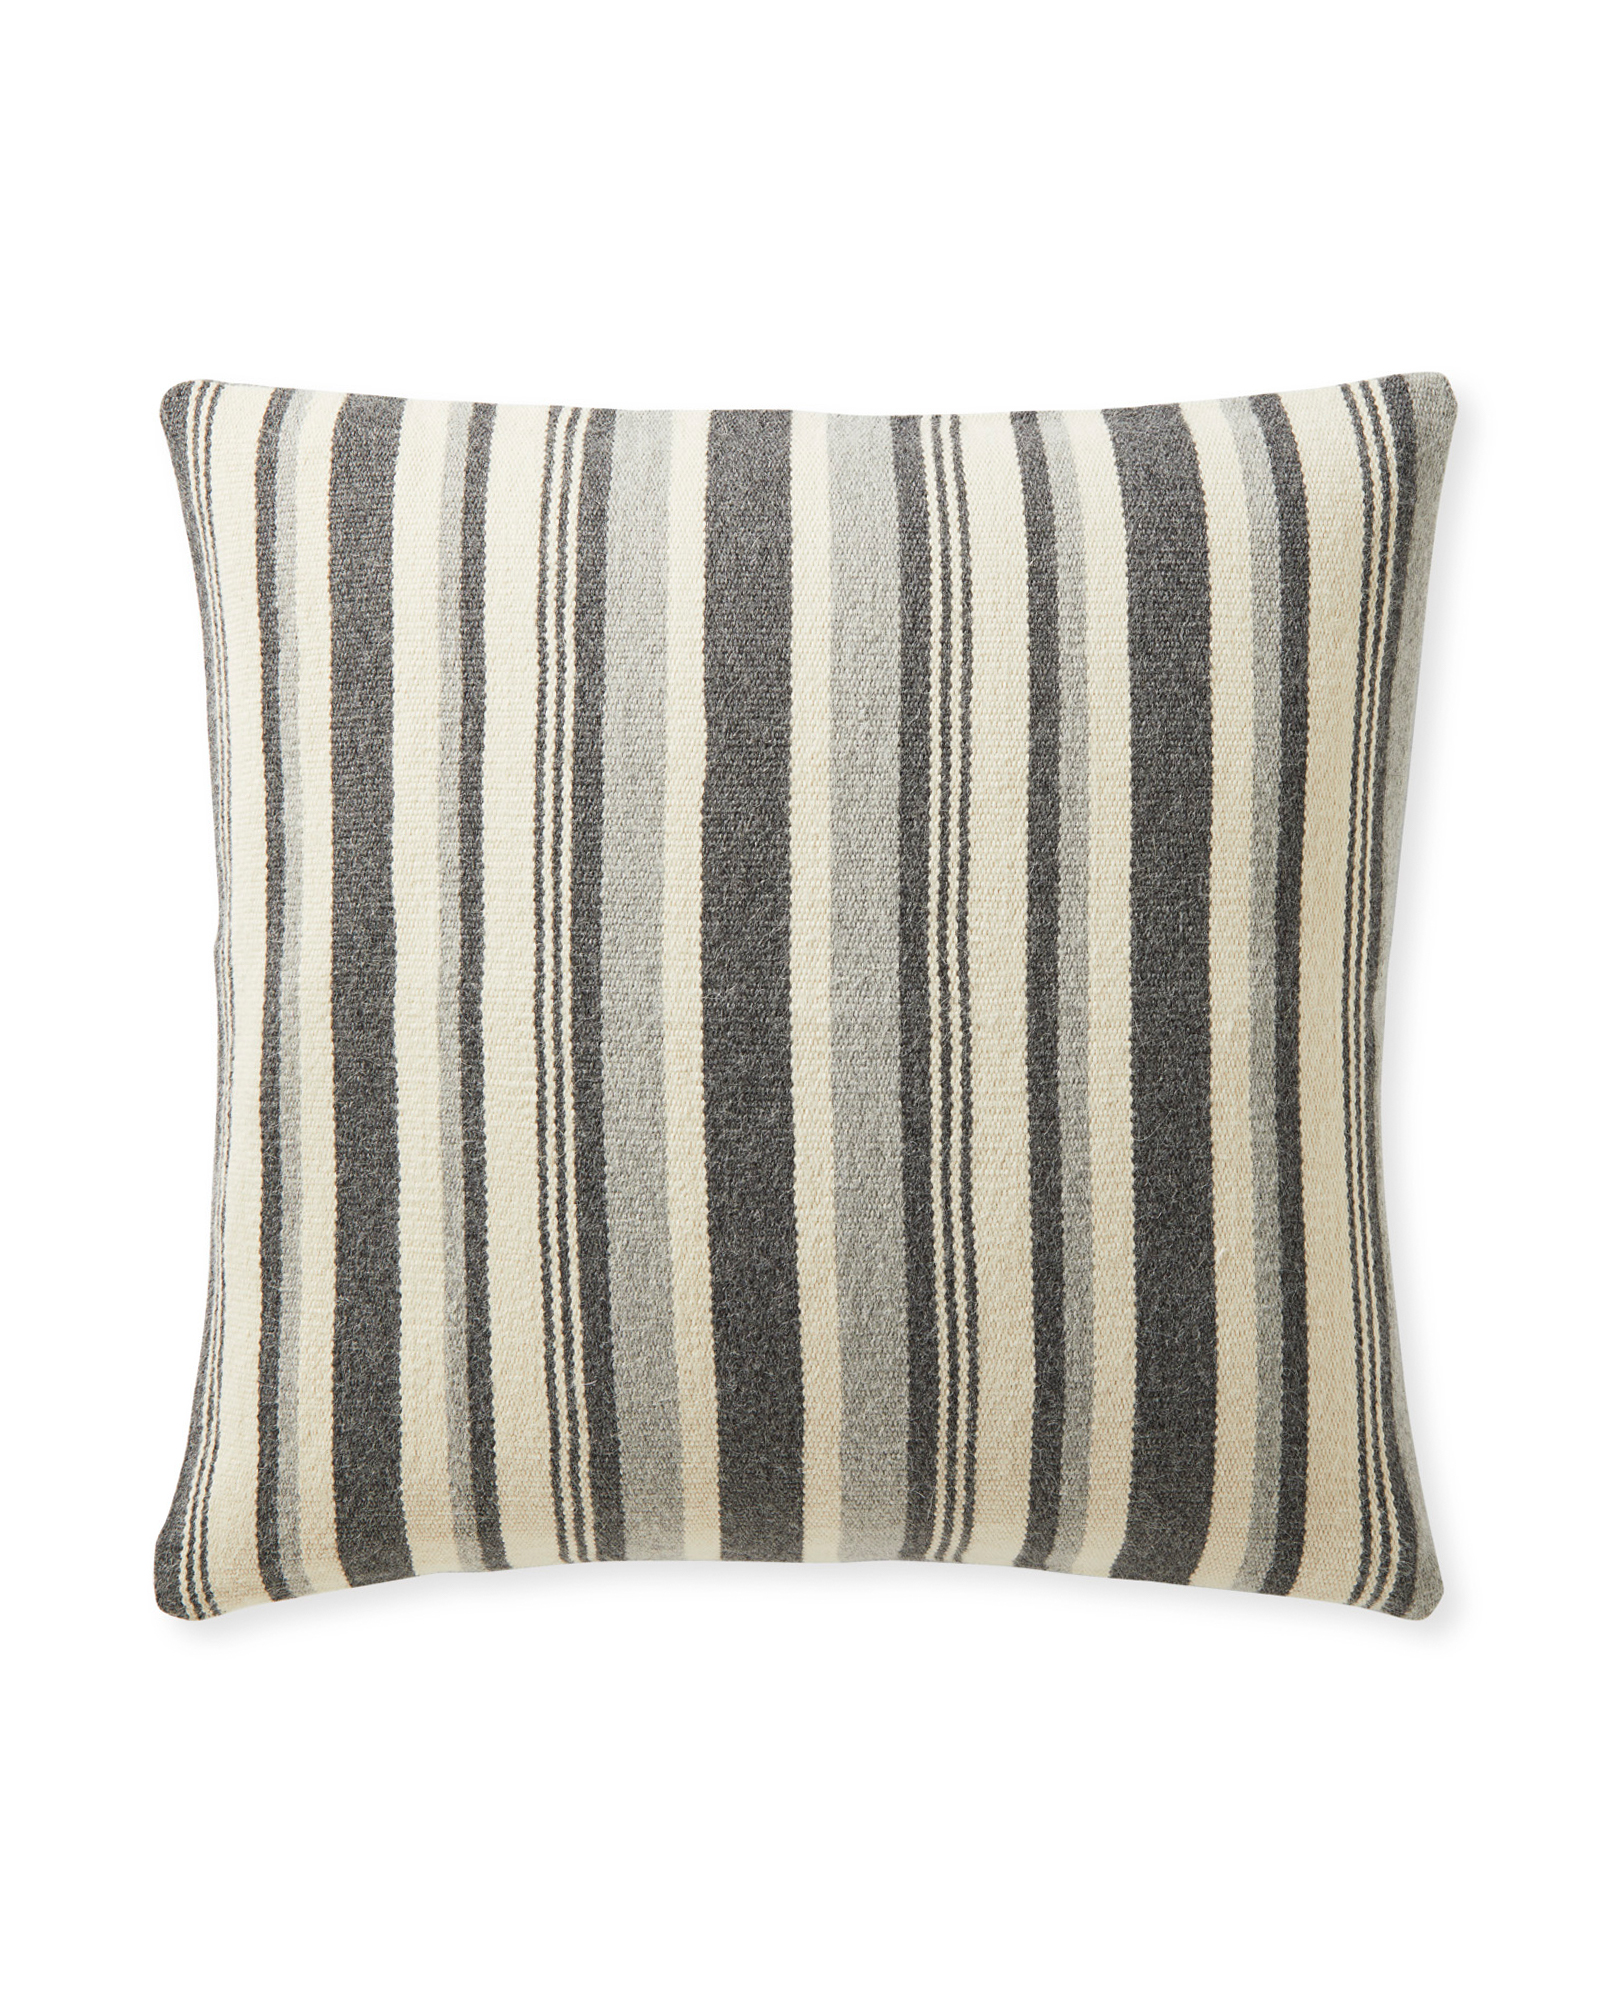 Lima Pillow Cover, Grey